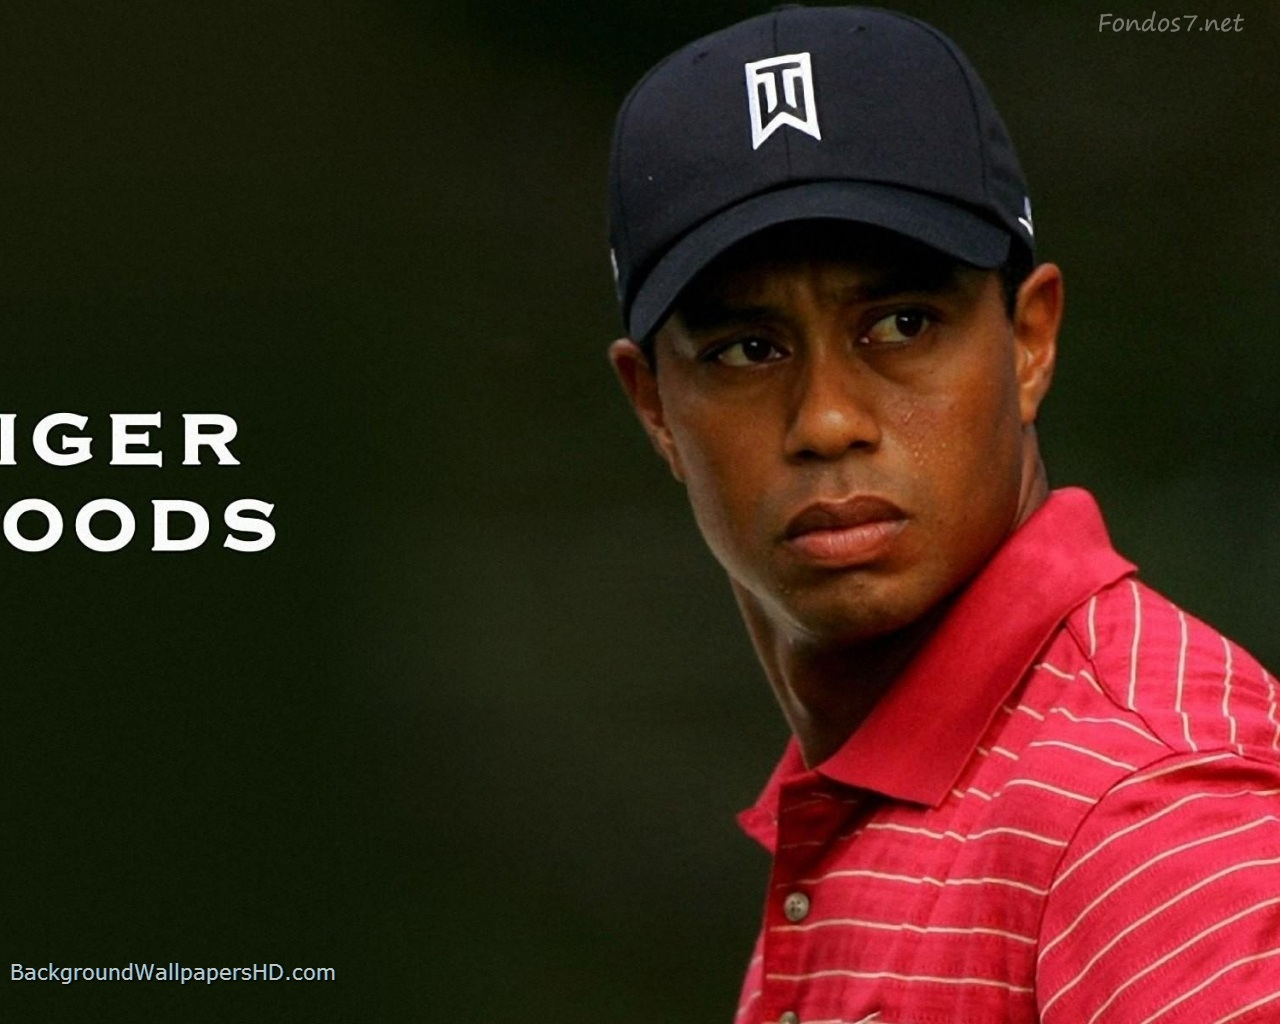 tiger woods wallpapers golf 1280x1024 300x240 tiger woods wallpapers golf 1280x1024